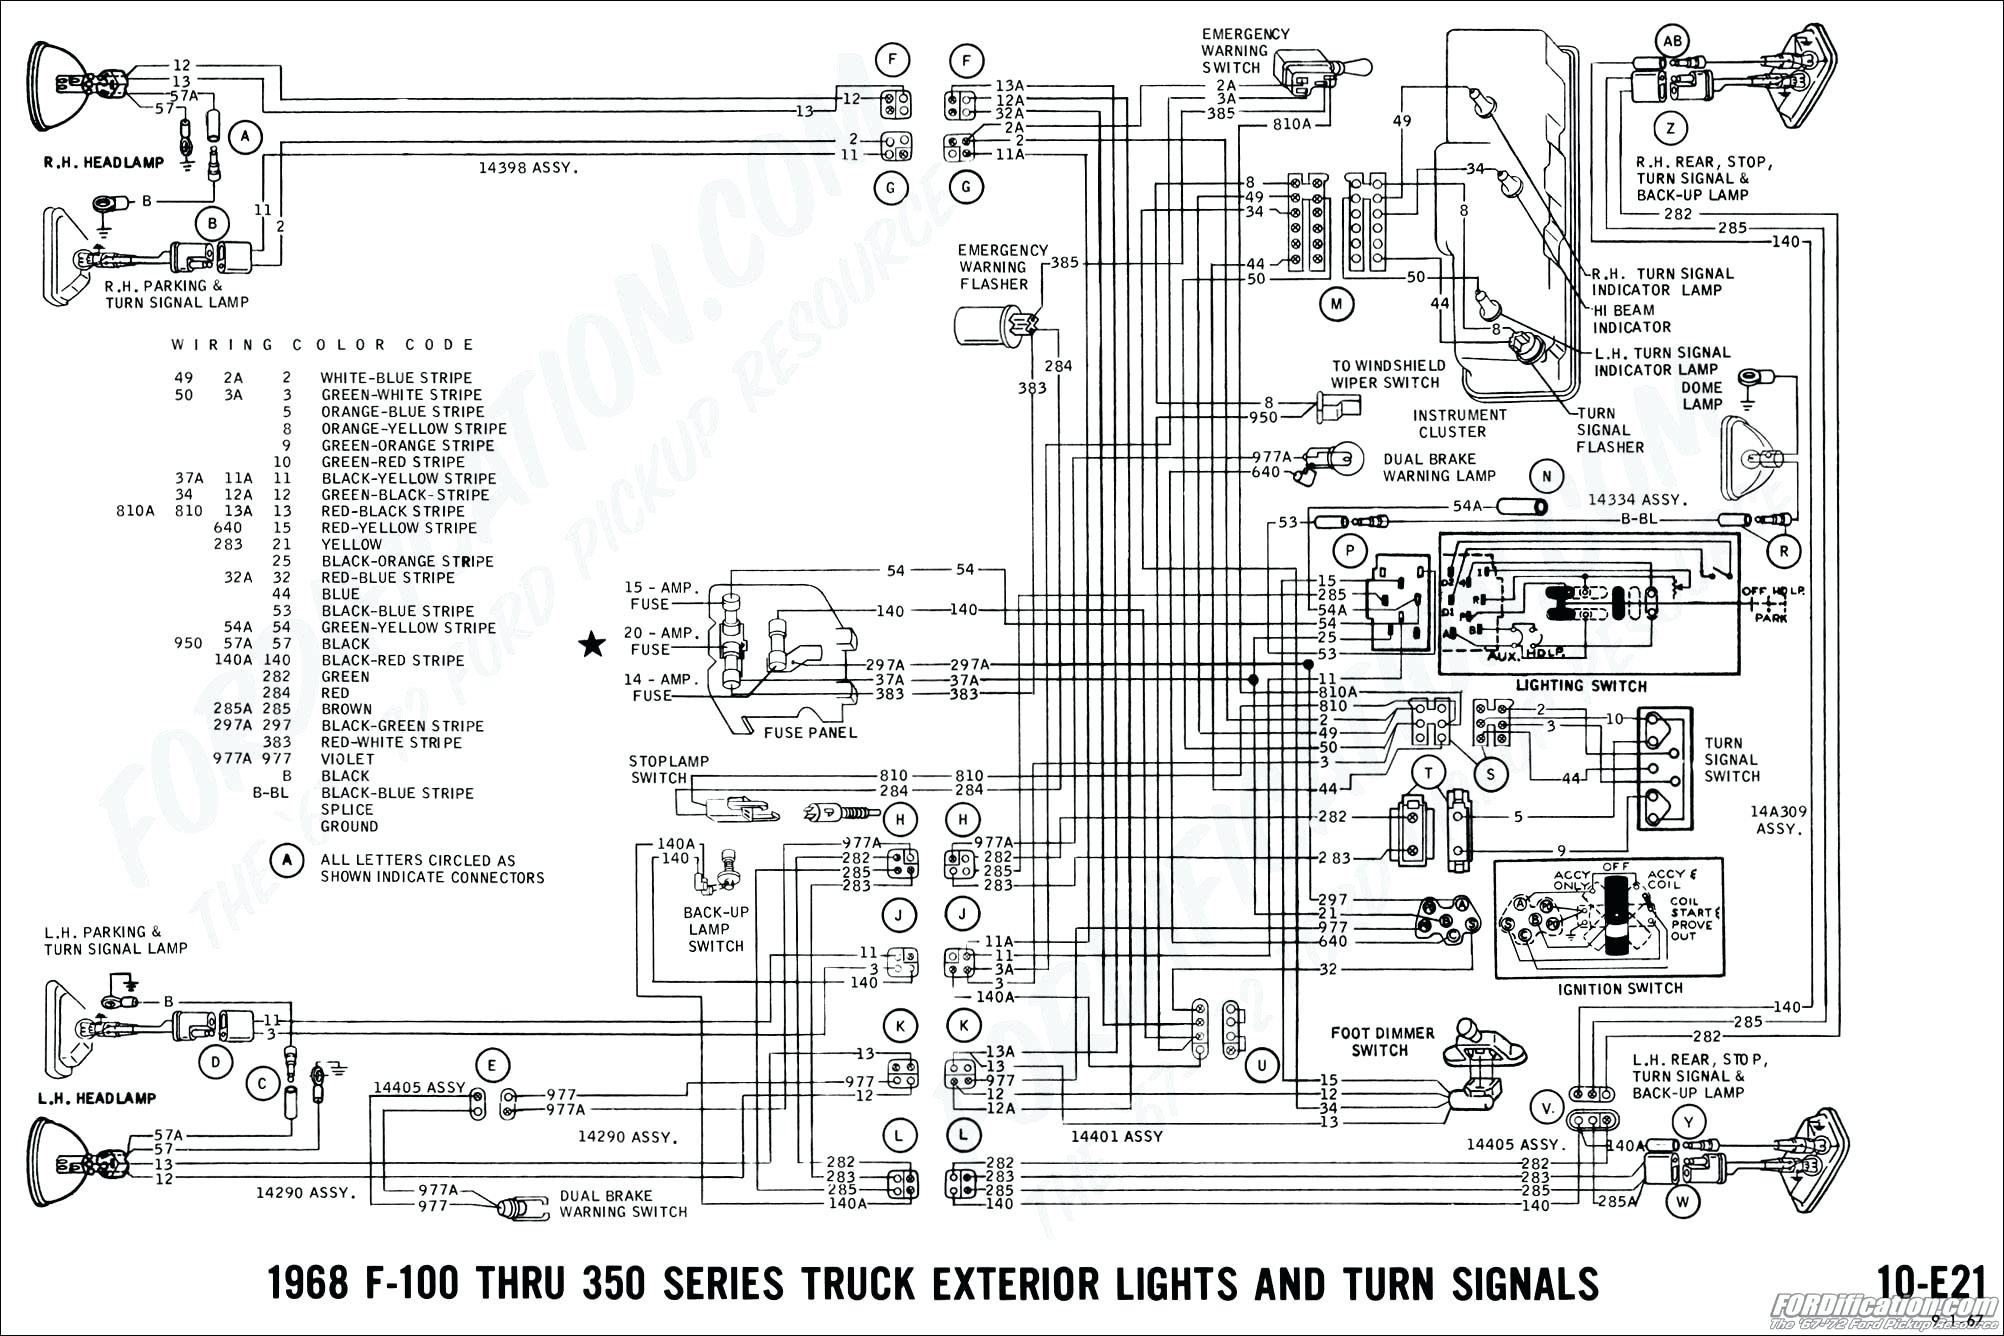 Gm Turn Signal Wiring Diagram And Schematics Silverado Truck Source 1980 Custom U2022 Rh Littlewaves Co Chevrolet